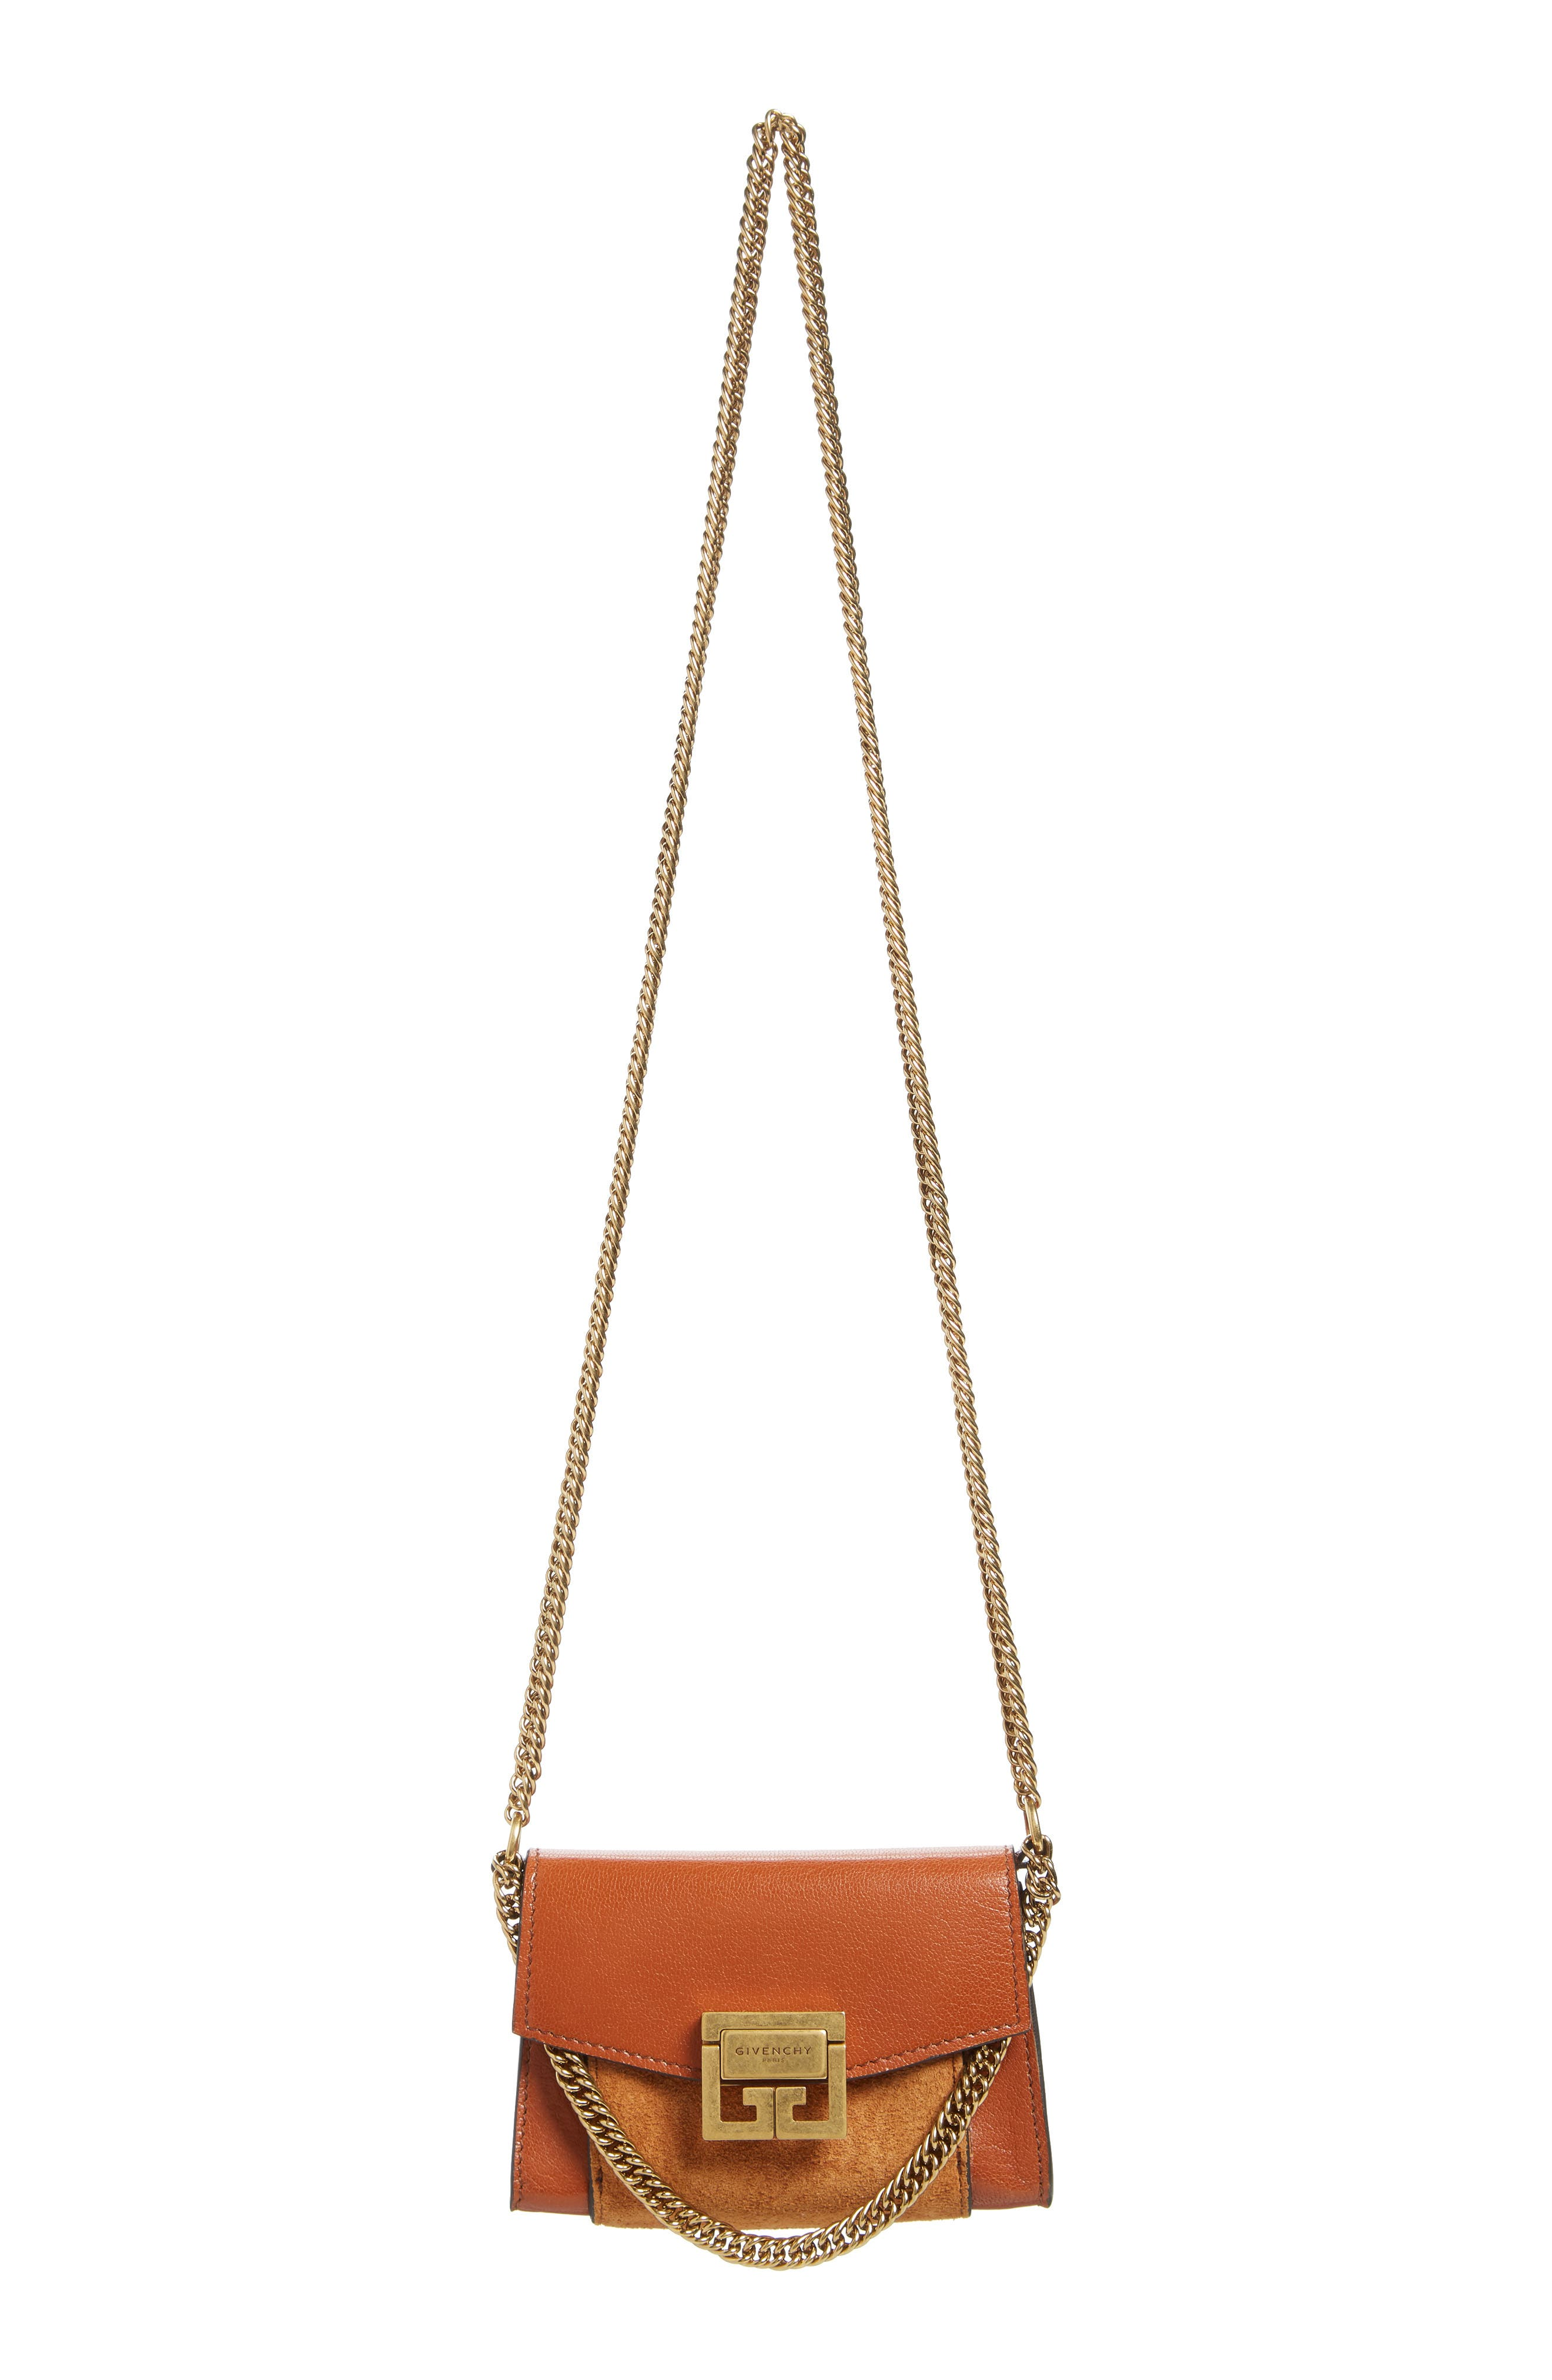 Givency Nano GV3 Leather & Suede Crossbody Bag,                             Alternate thumbnail 2, color,                             CHESTNUT